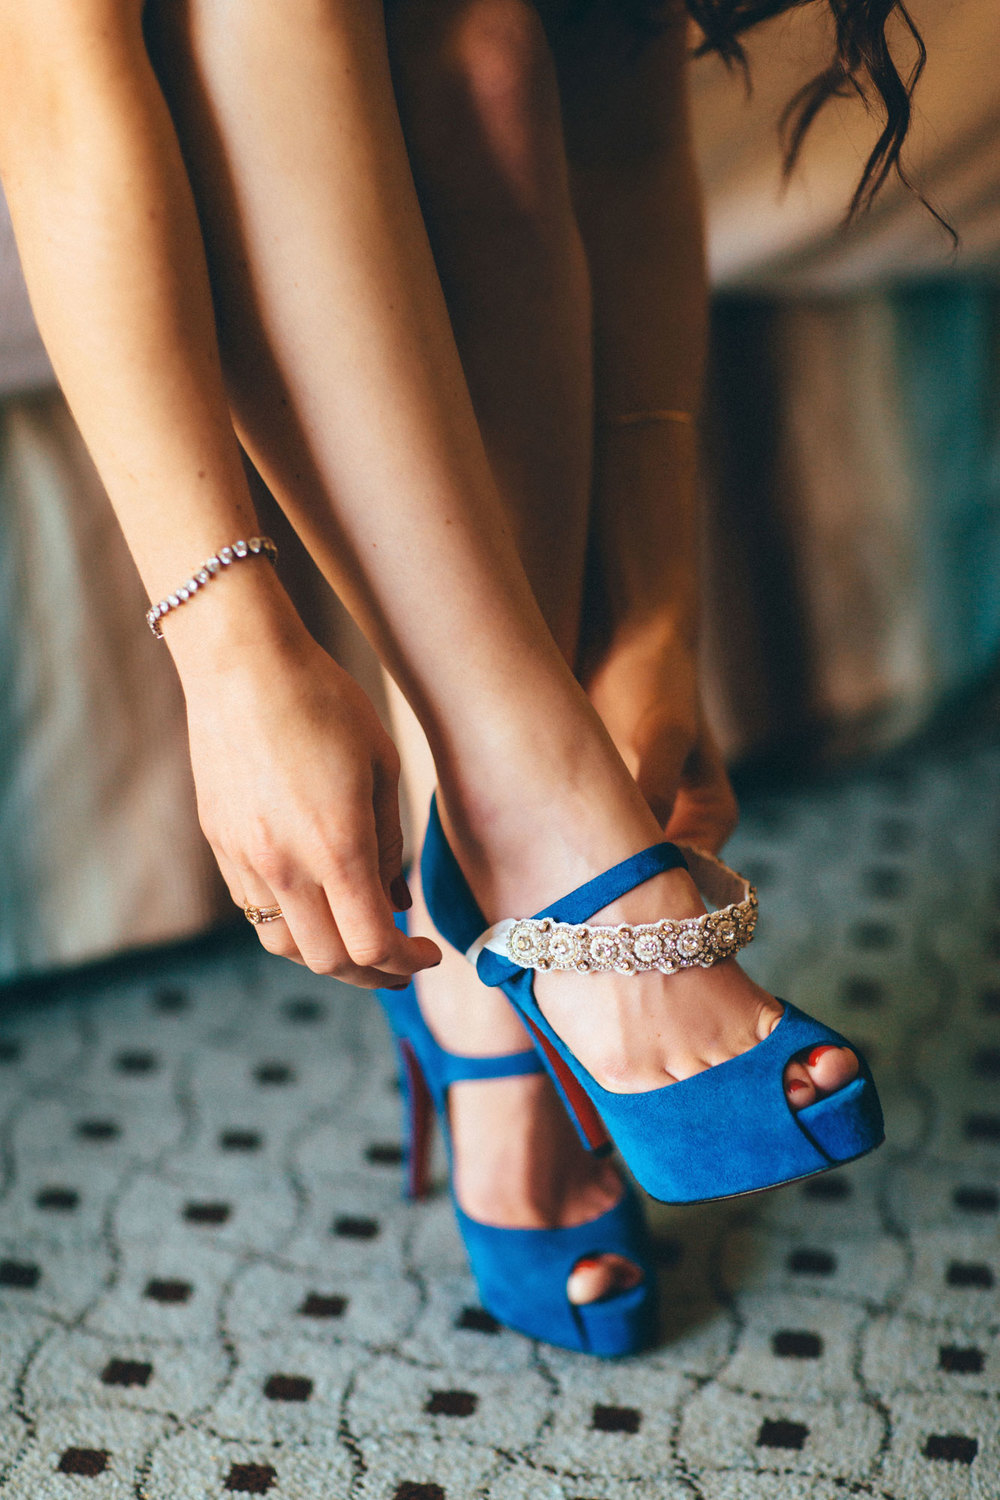 Me & Mr. Jones Wedding, Blue Christian Louboutin Pumps, Blue Wedding Shoes, La Gartier garter, Beaded Garter